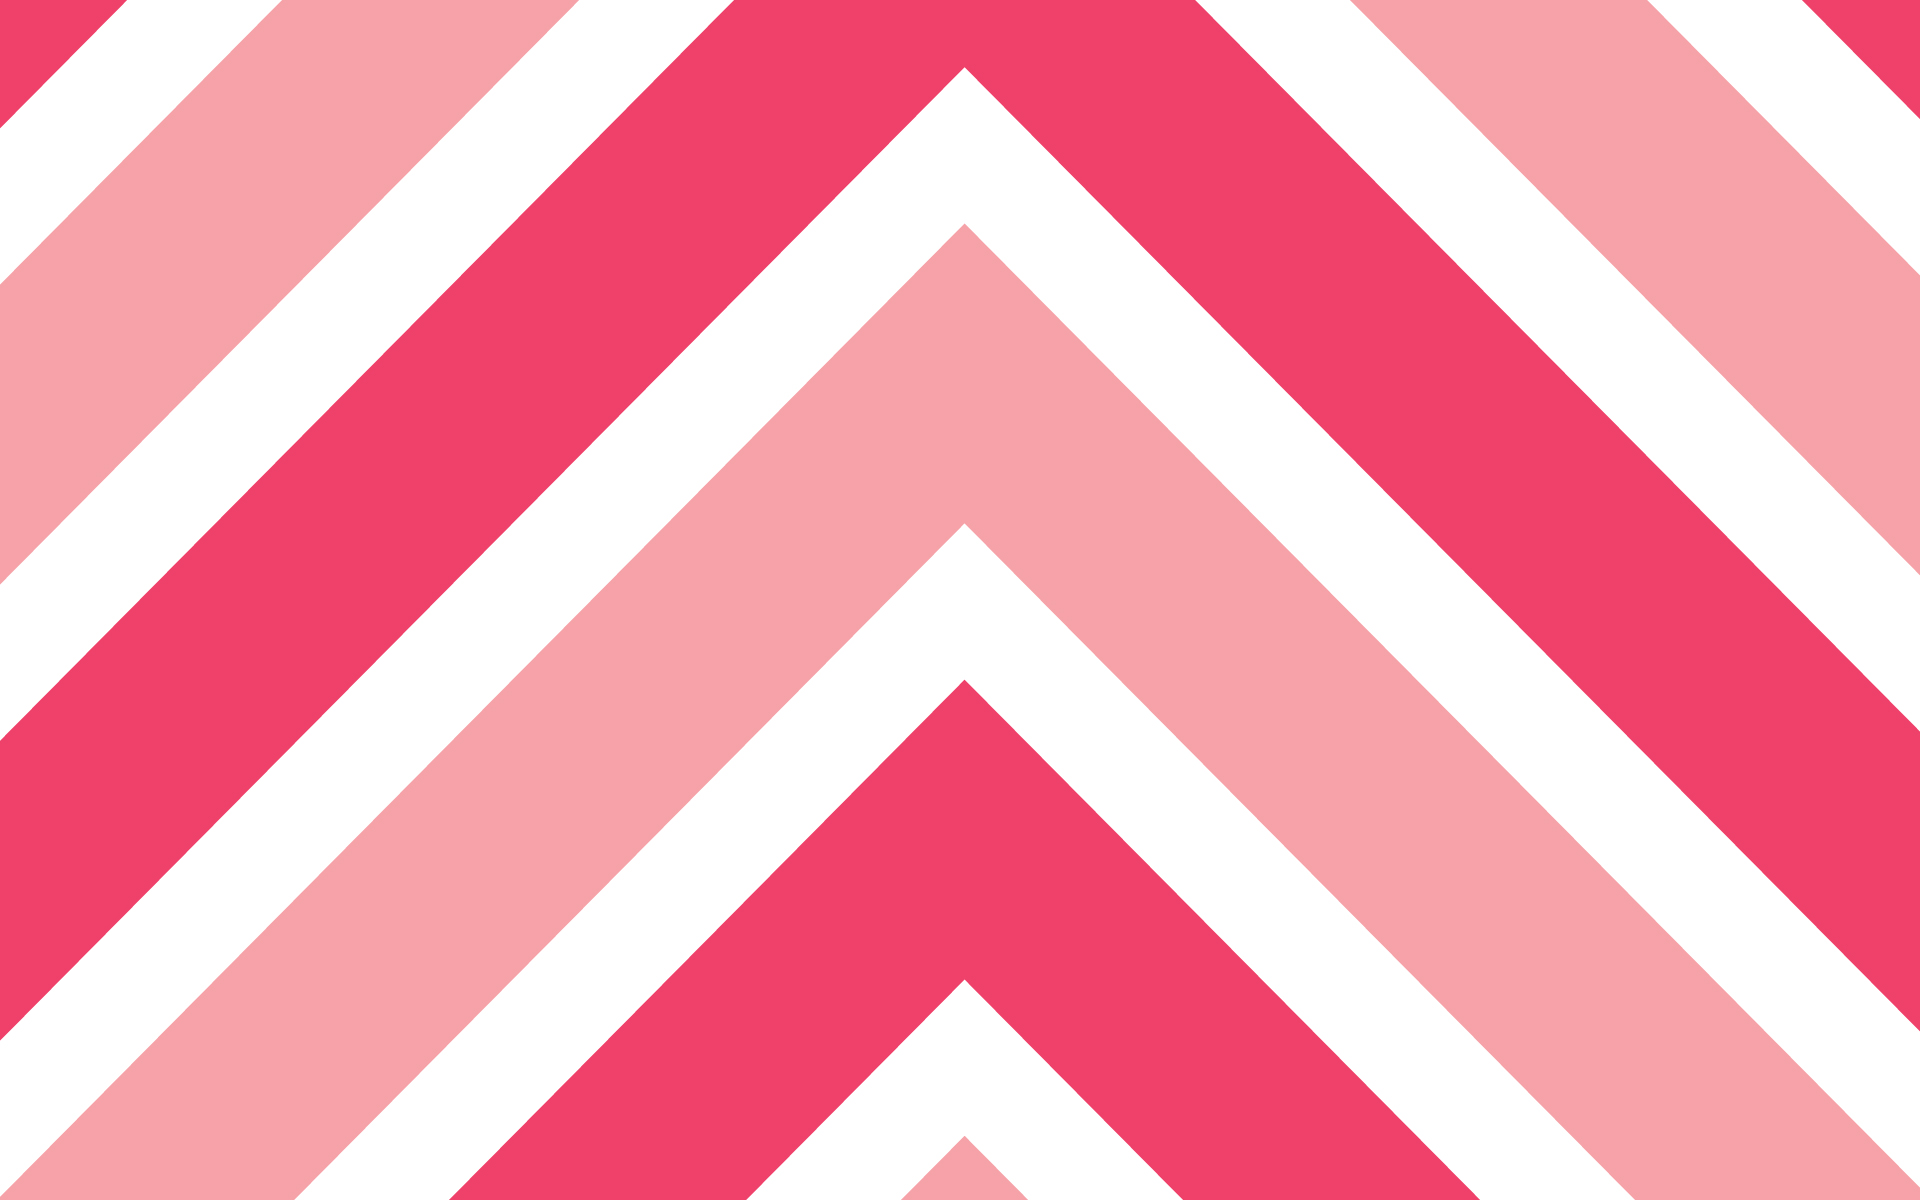 Chevron Pattern Background   Clipart Best